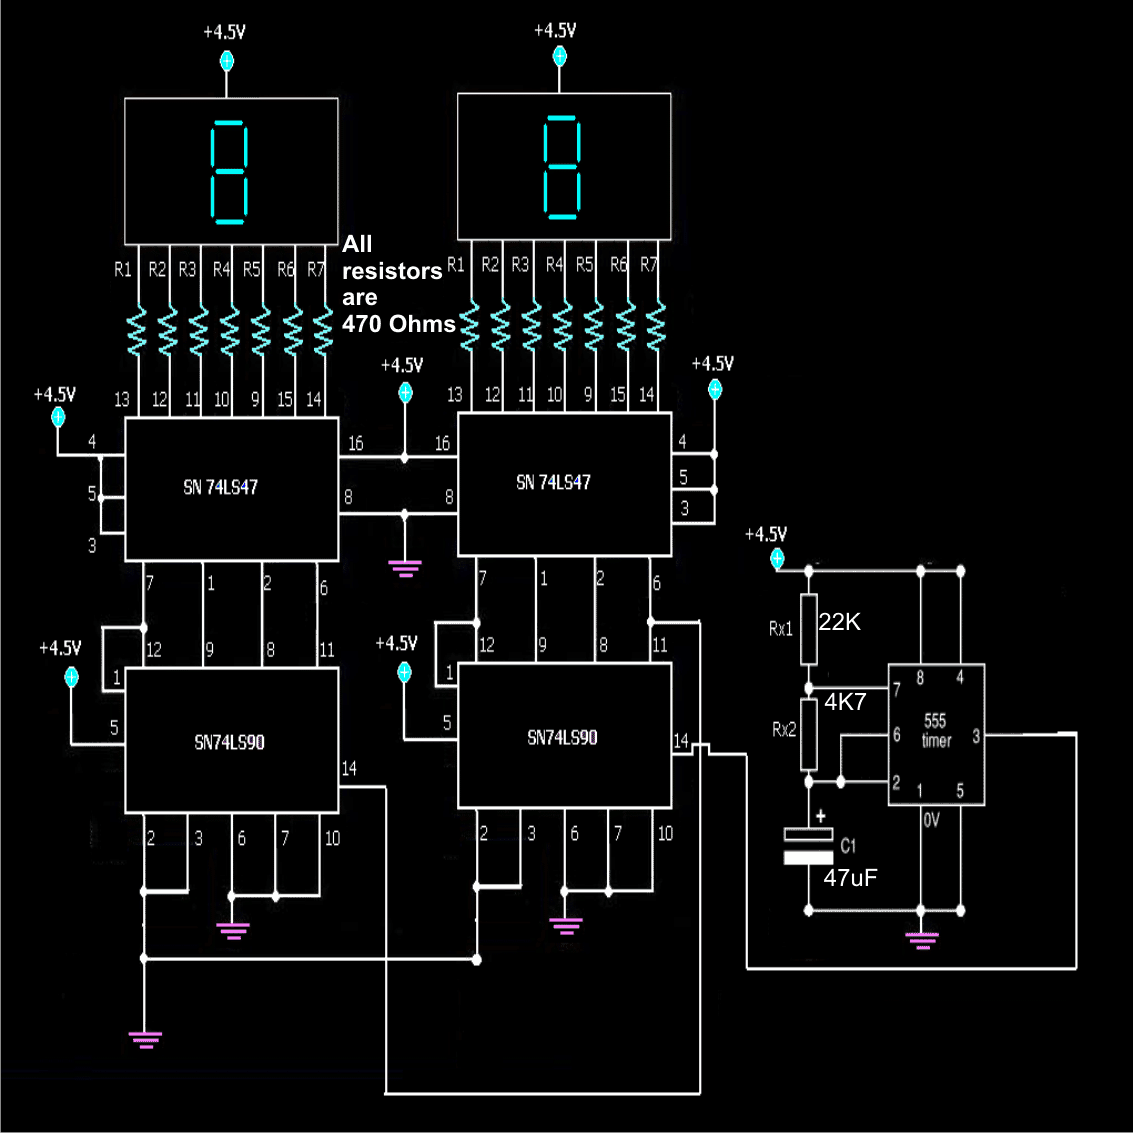 2 Simple Frequency Counter Circuits | Homemade Circuit Projects on ring counter circuit diagram, frequency generator, frequency formula, digital watch circuit diagram, frequency counter flow chart, basic circuit diagram, frequency diagram example,